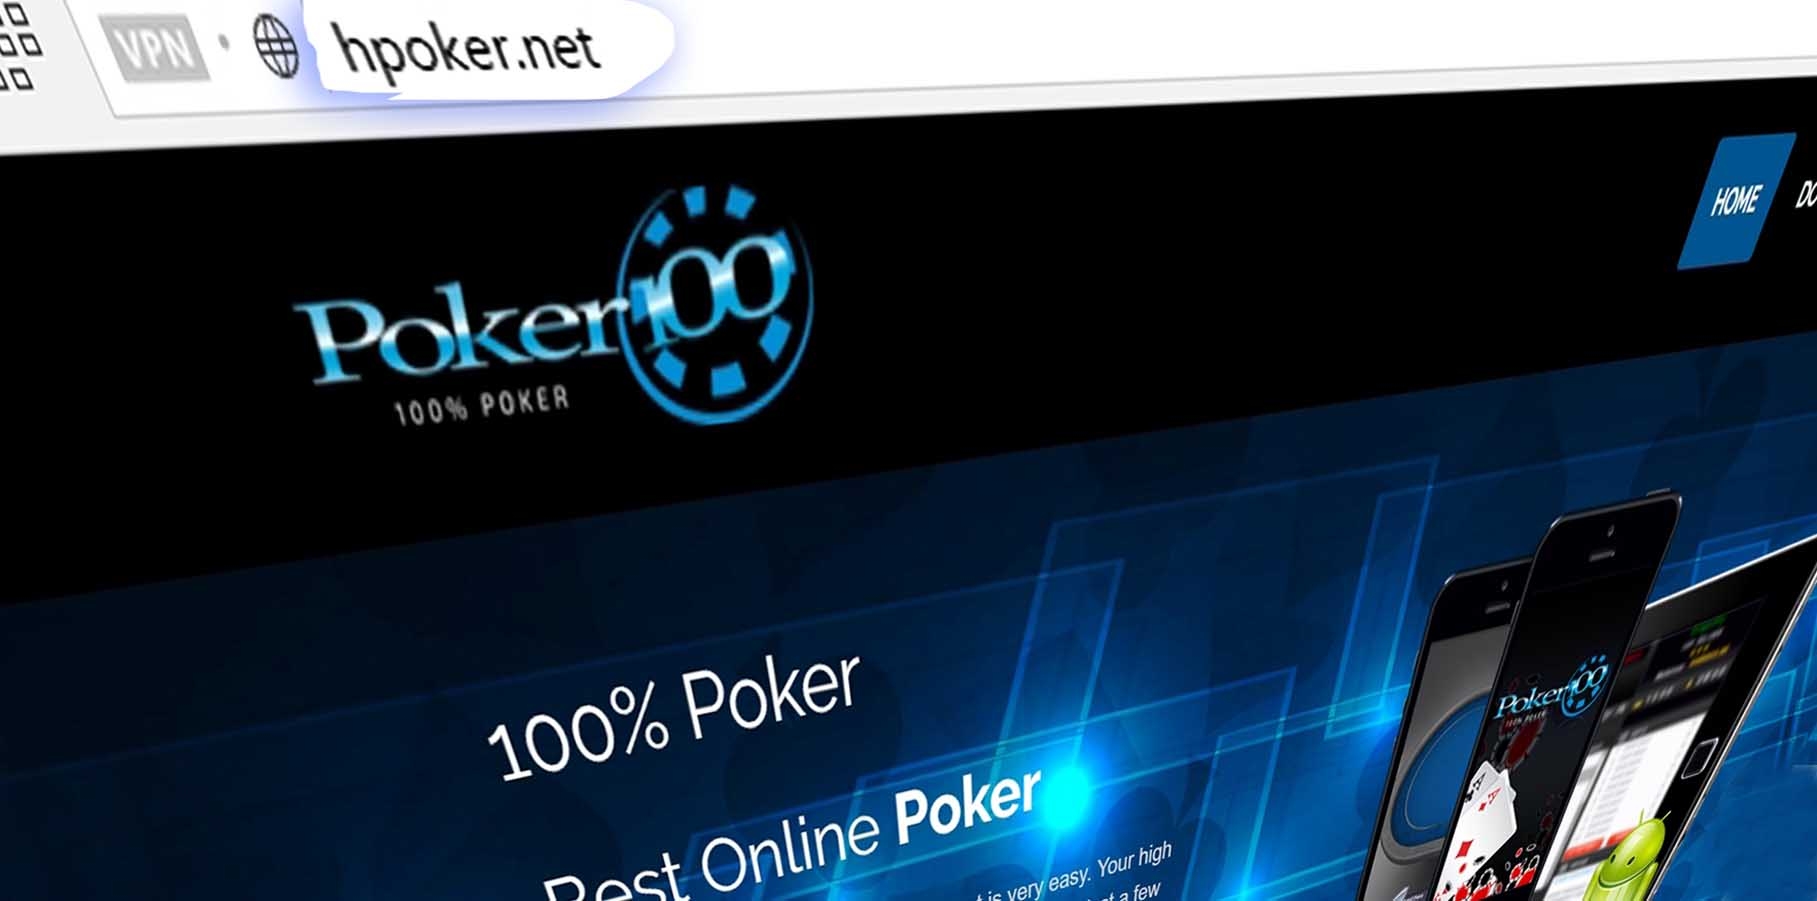 Poker100 has moved to a new domain.